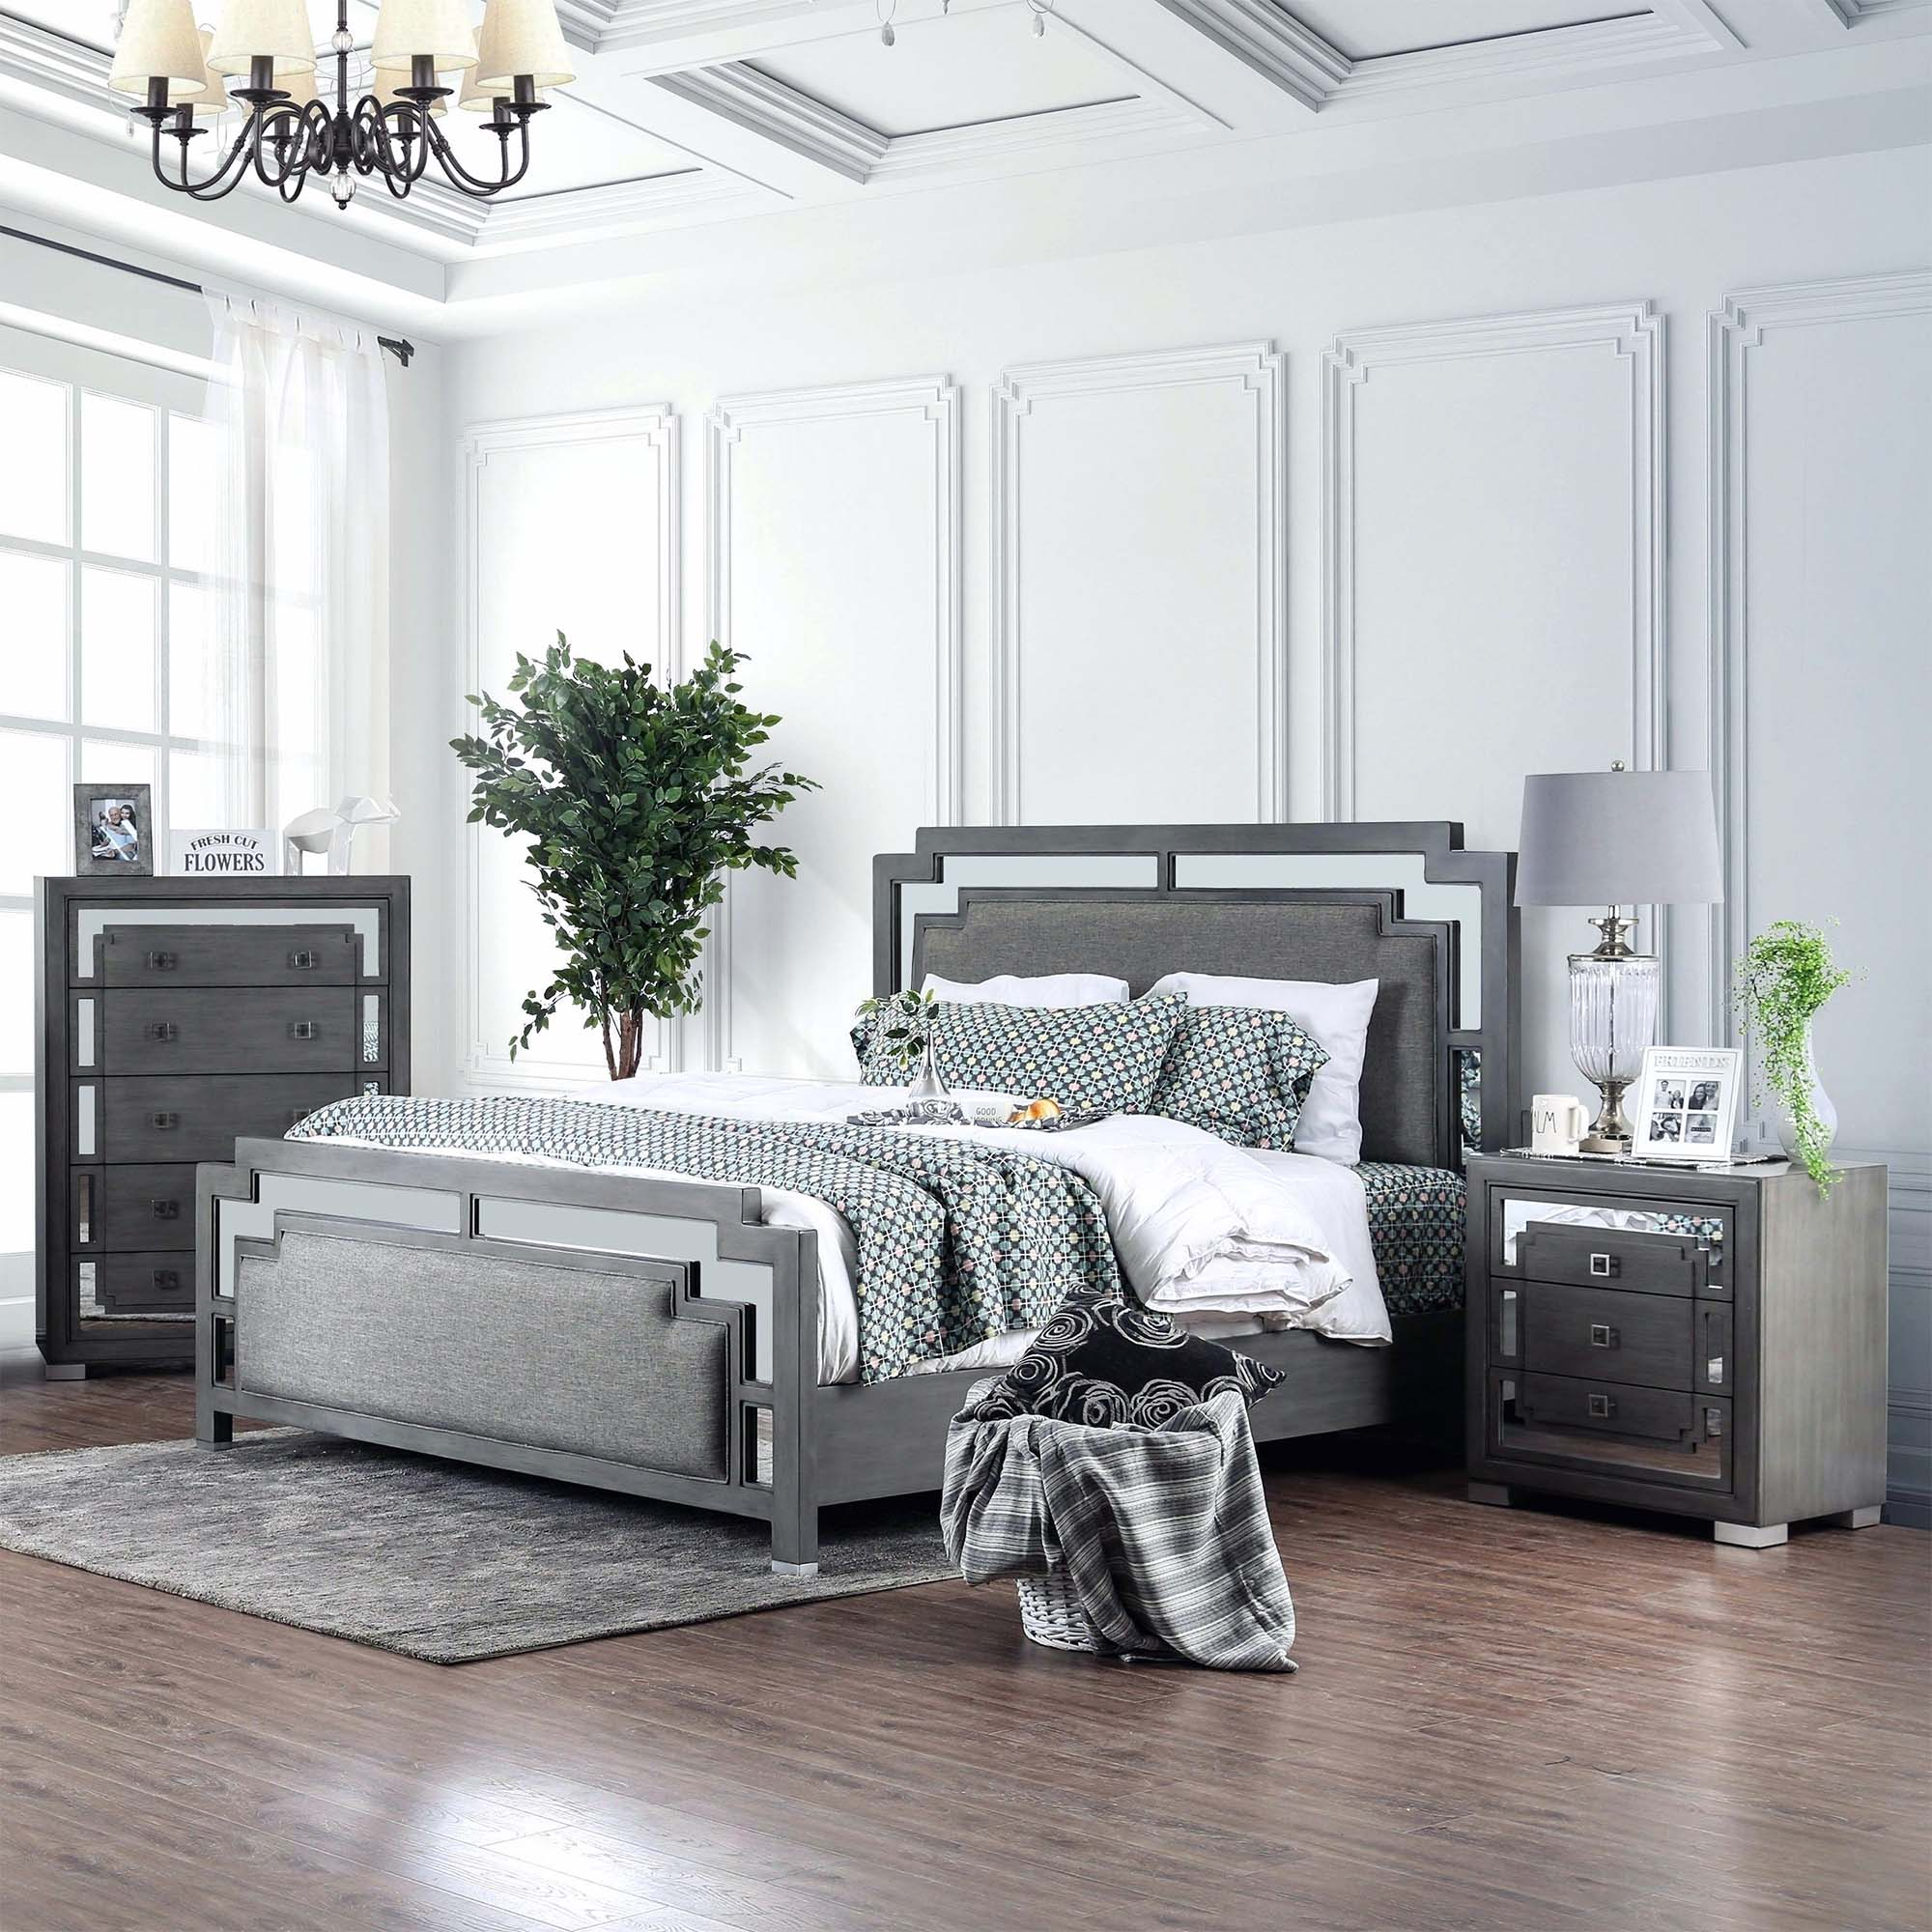 Grey Master Bedroom: Master Bedroom Design Ideas, Tips And Photos For 2019